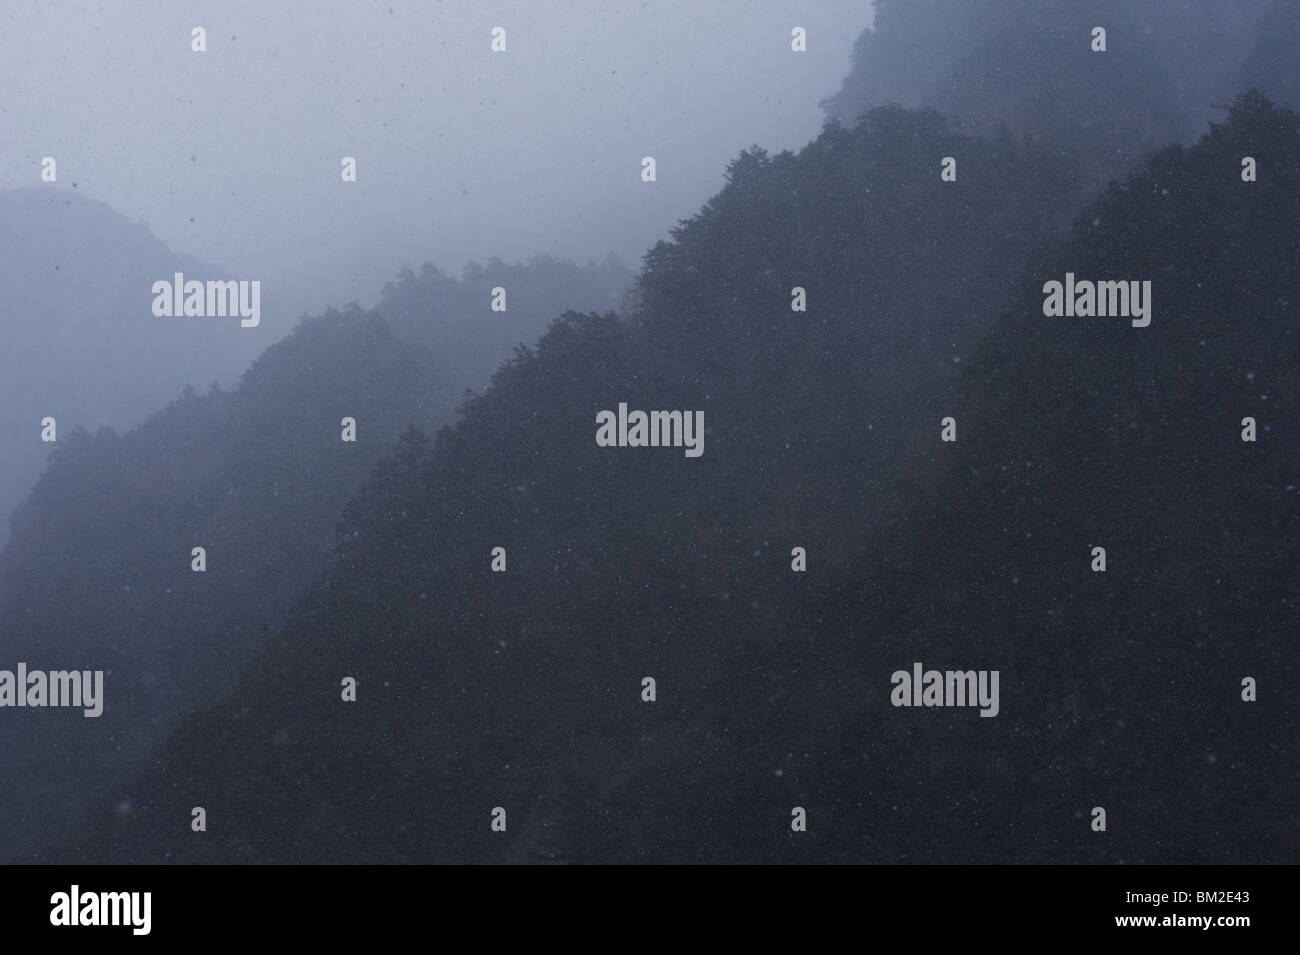 A spring snowstorm obscures the forested mountainsides at Kamikochi, Japan - Stock Image